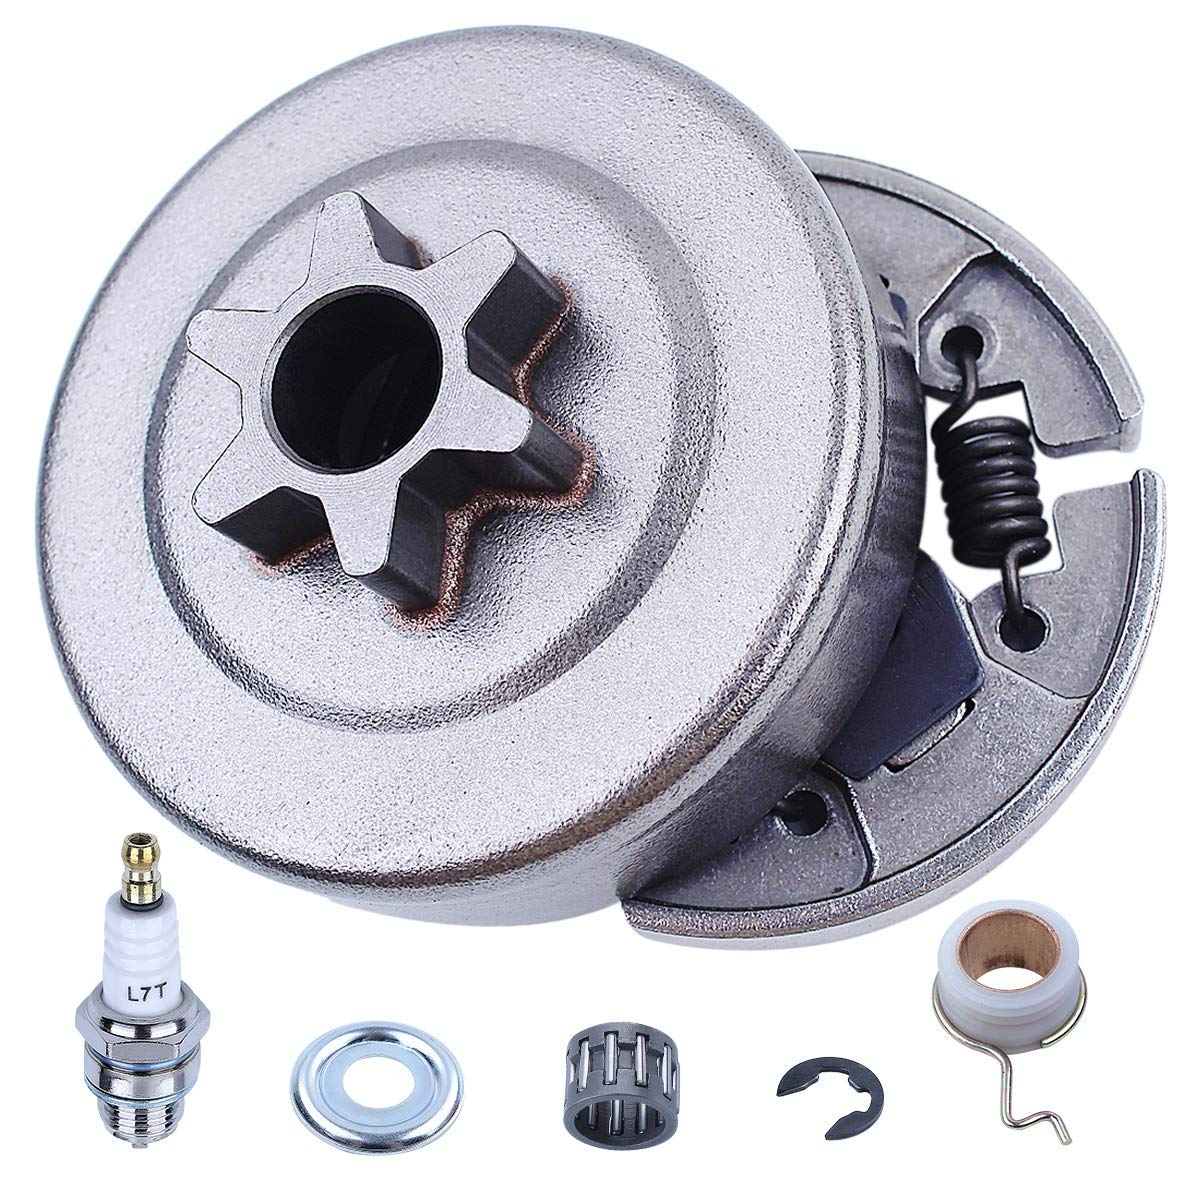 Chainsaw 7pcs Kit Sprocket Clutch 3/8'' for Stihl 017 018 021 023 025 MS170 MS180 MS210 MS230 MS250 Replacement Parts with Needle Bearing Washer E-Clip Worm Gear for 1123 640 2003, 1123 640 2073 by Adefol